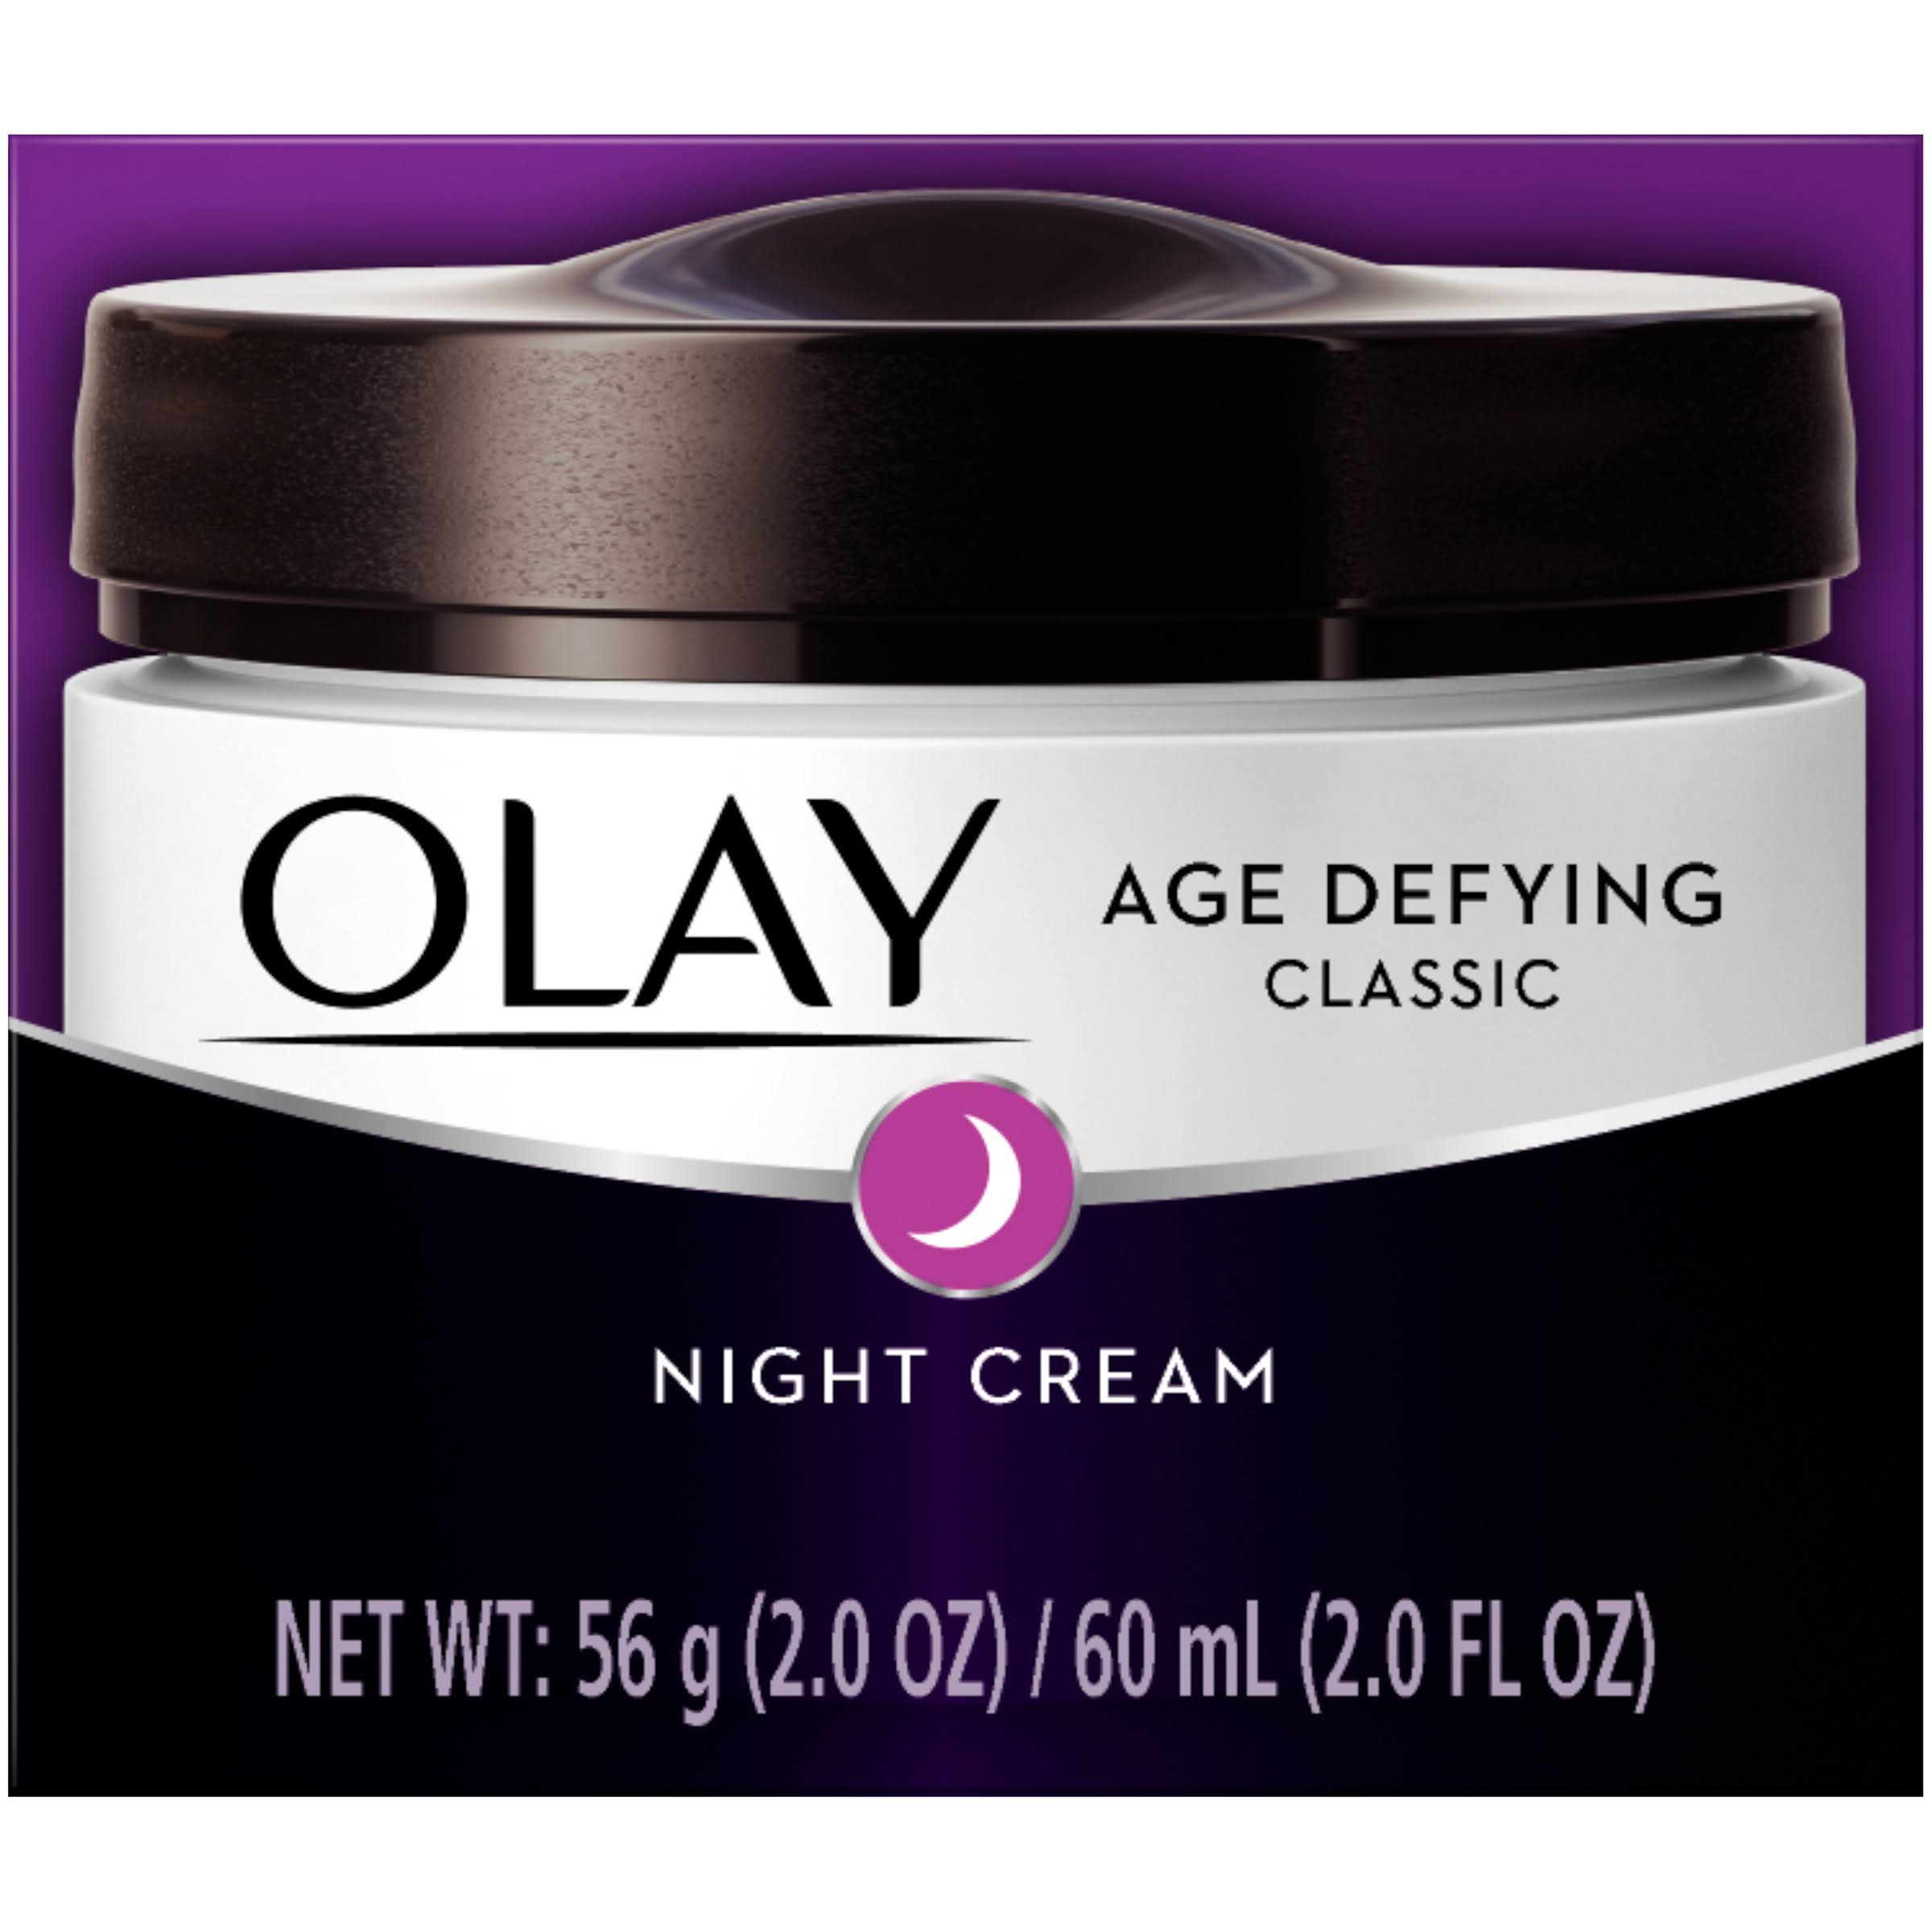 Olay Age Defying Classic Night Cream - 2.0oz